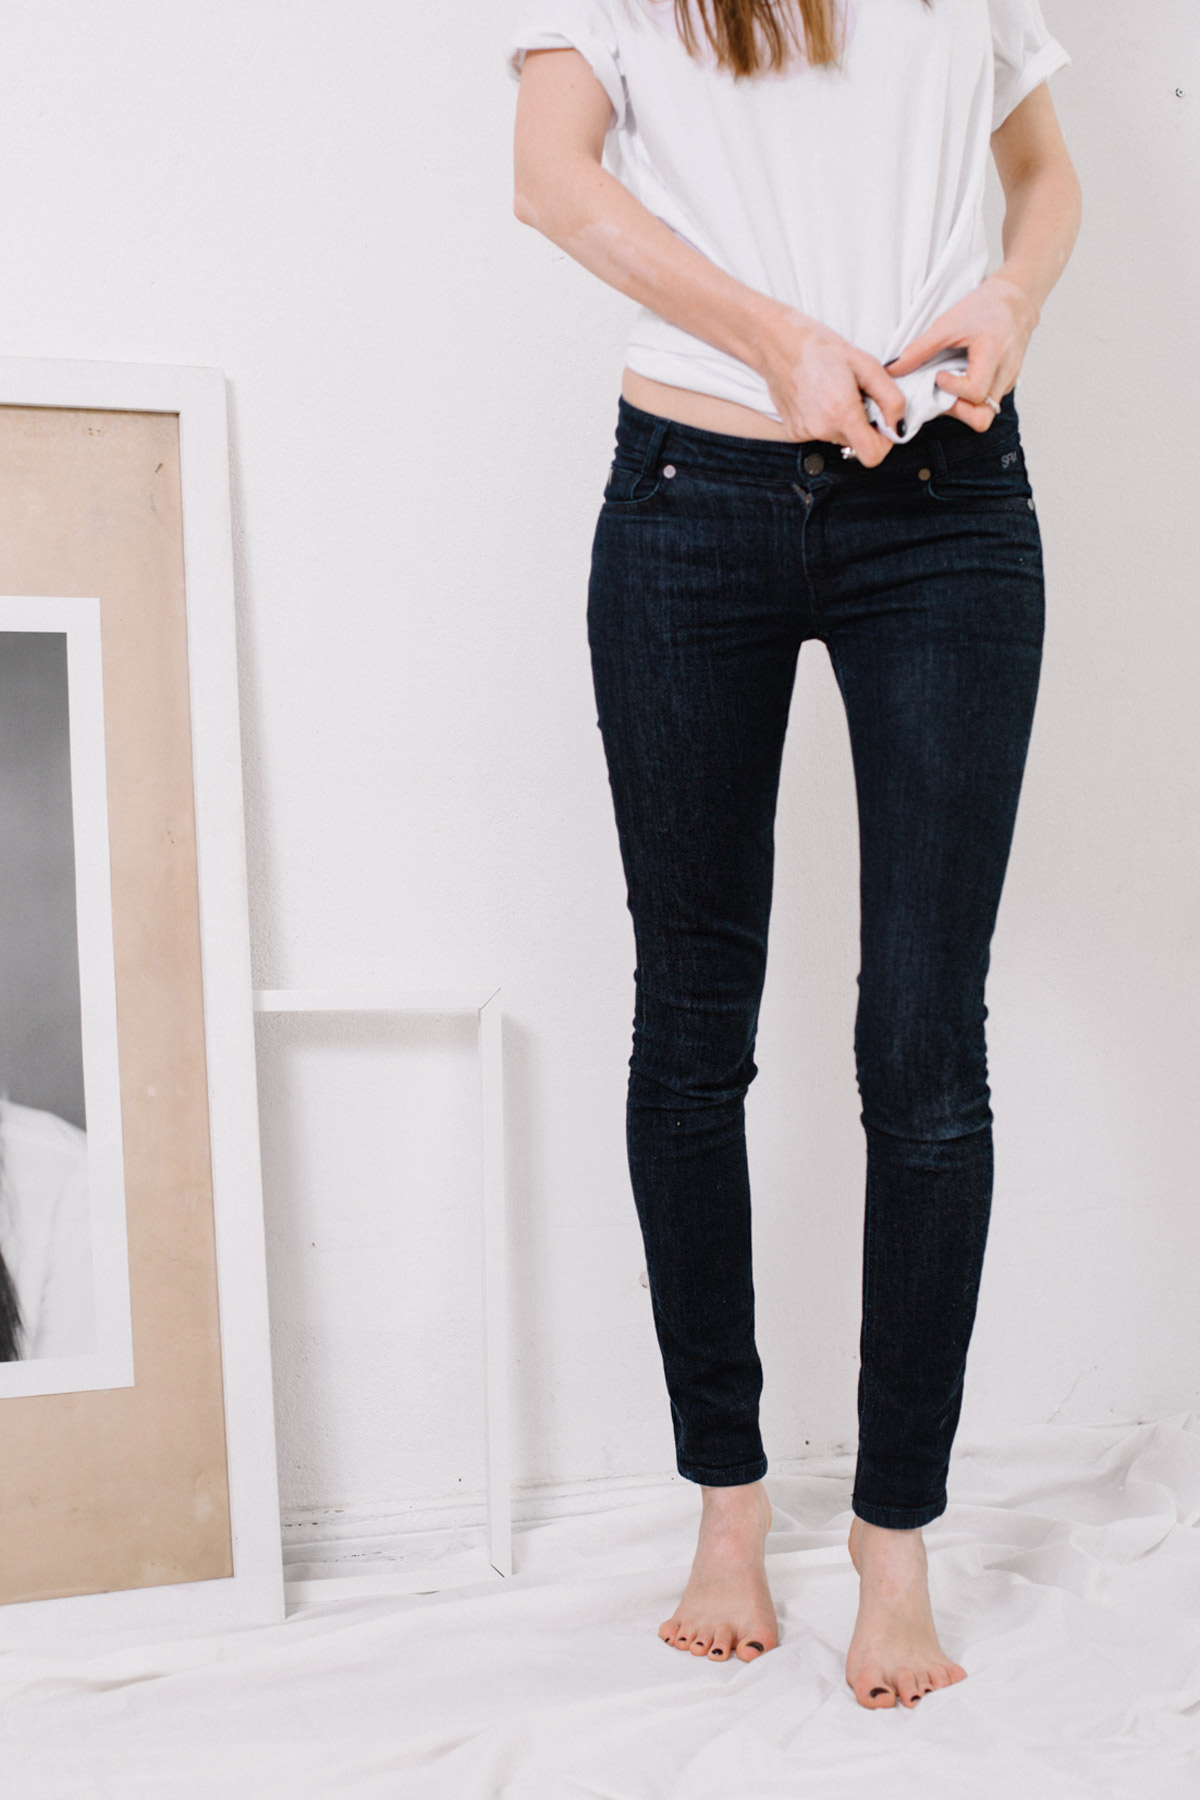 fitted-jeans-fairtrade.jpg